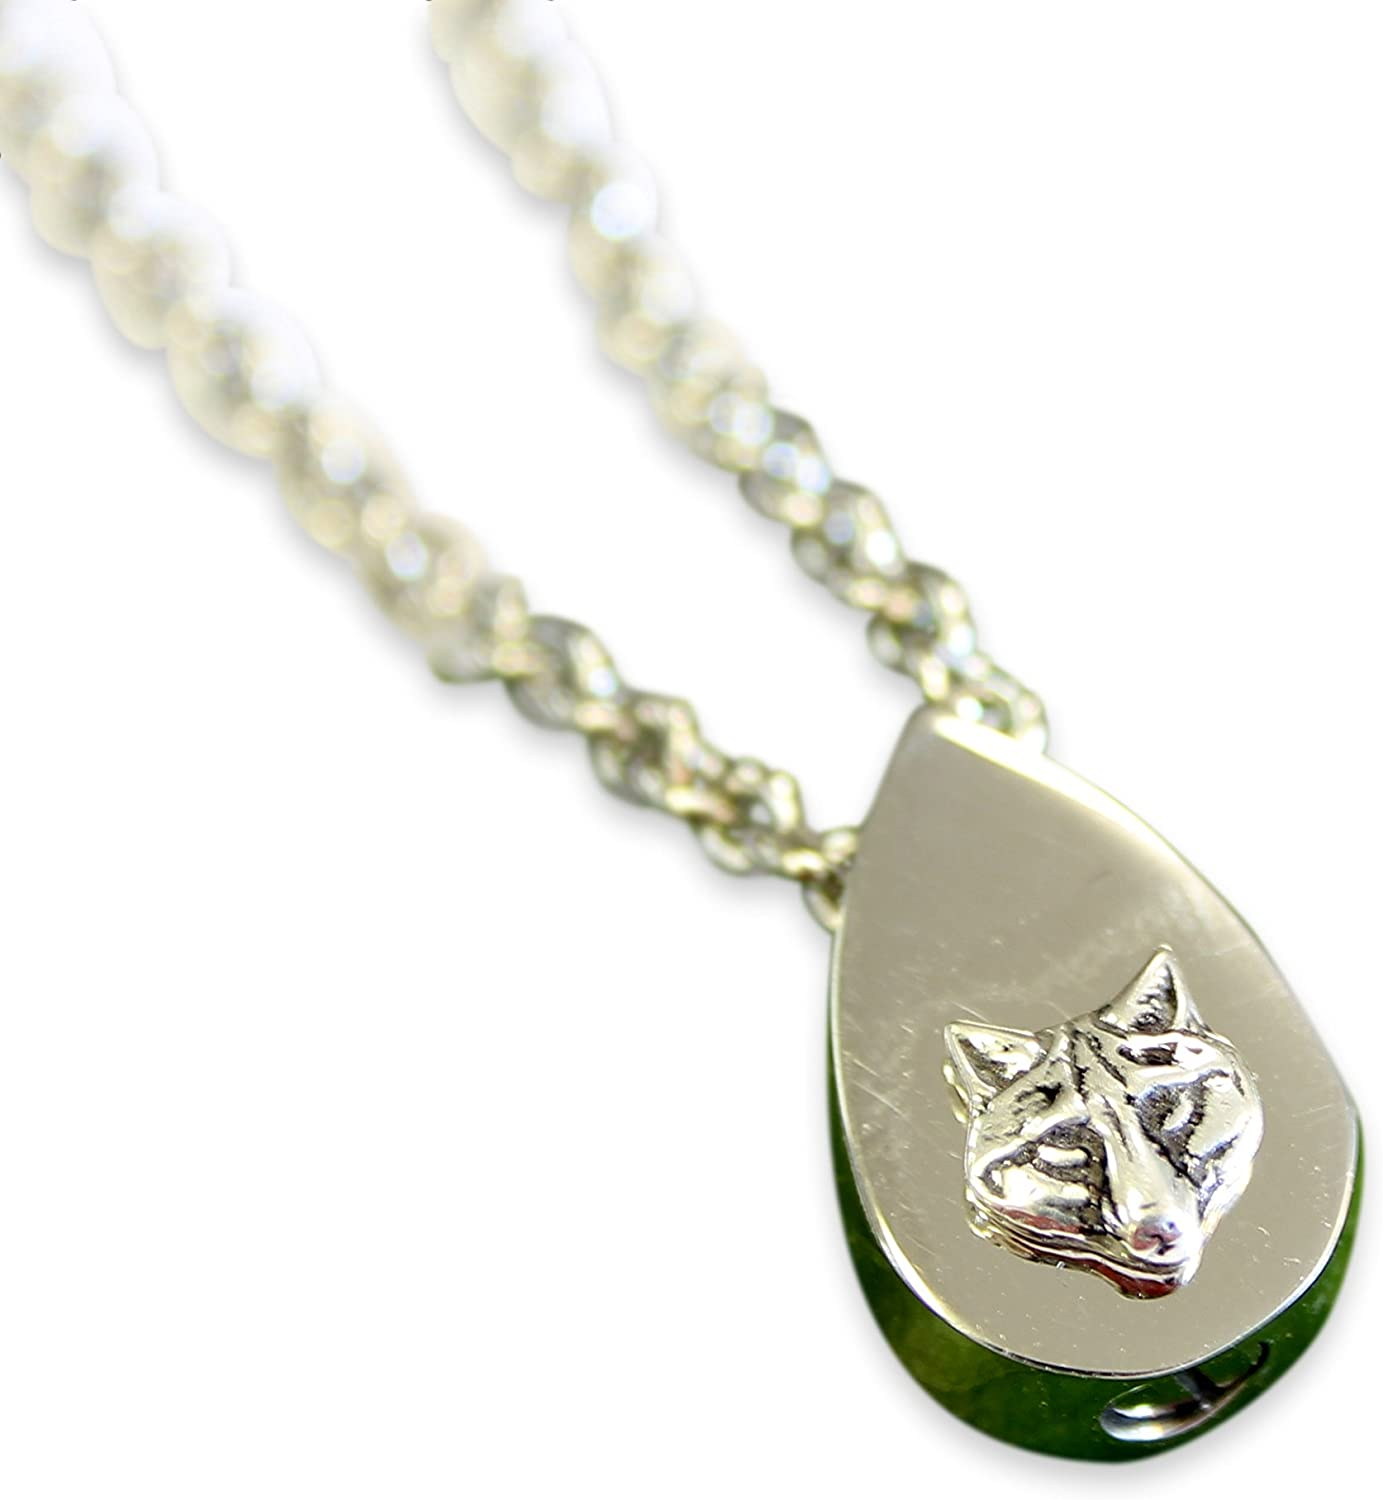 Silver Stainless Steel Tiny Wolf Face Tear Drop Cremation Urn Ashes Memorial Capsule Pendant Necklace